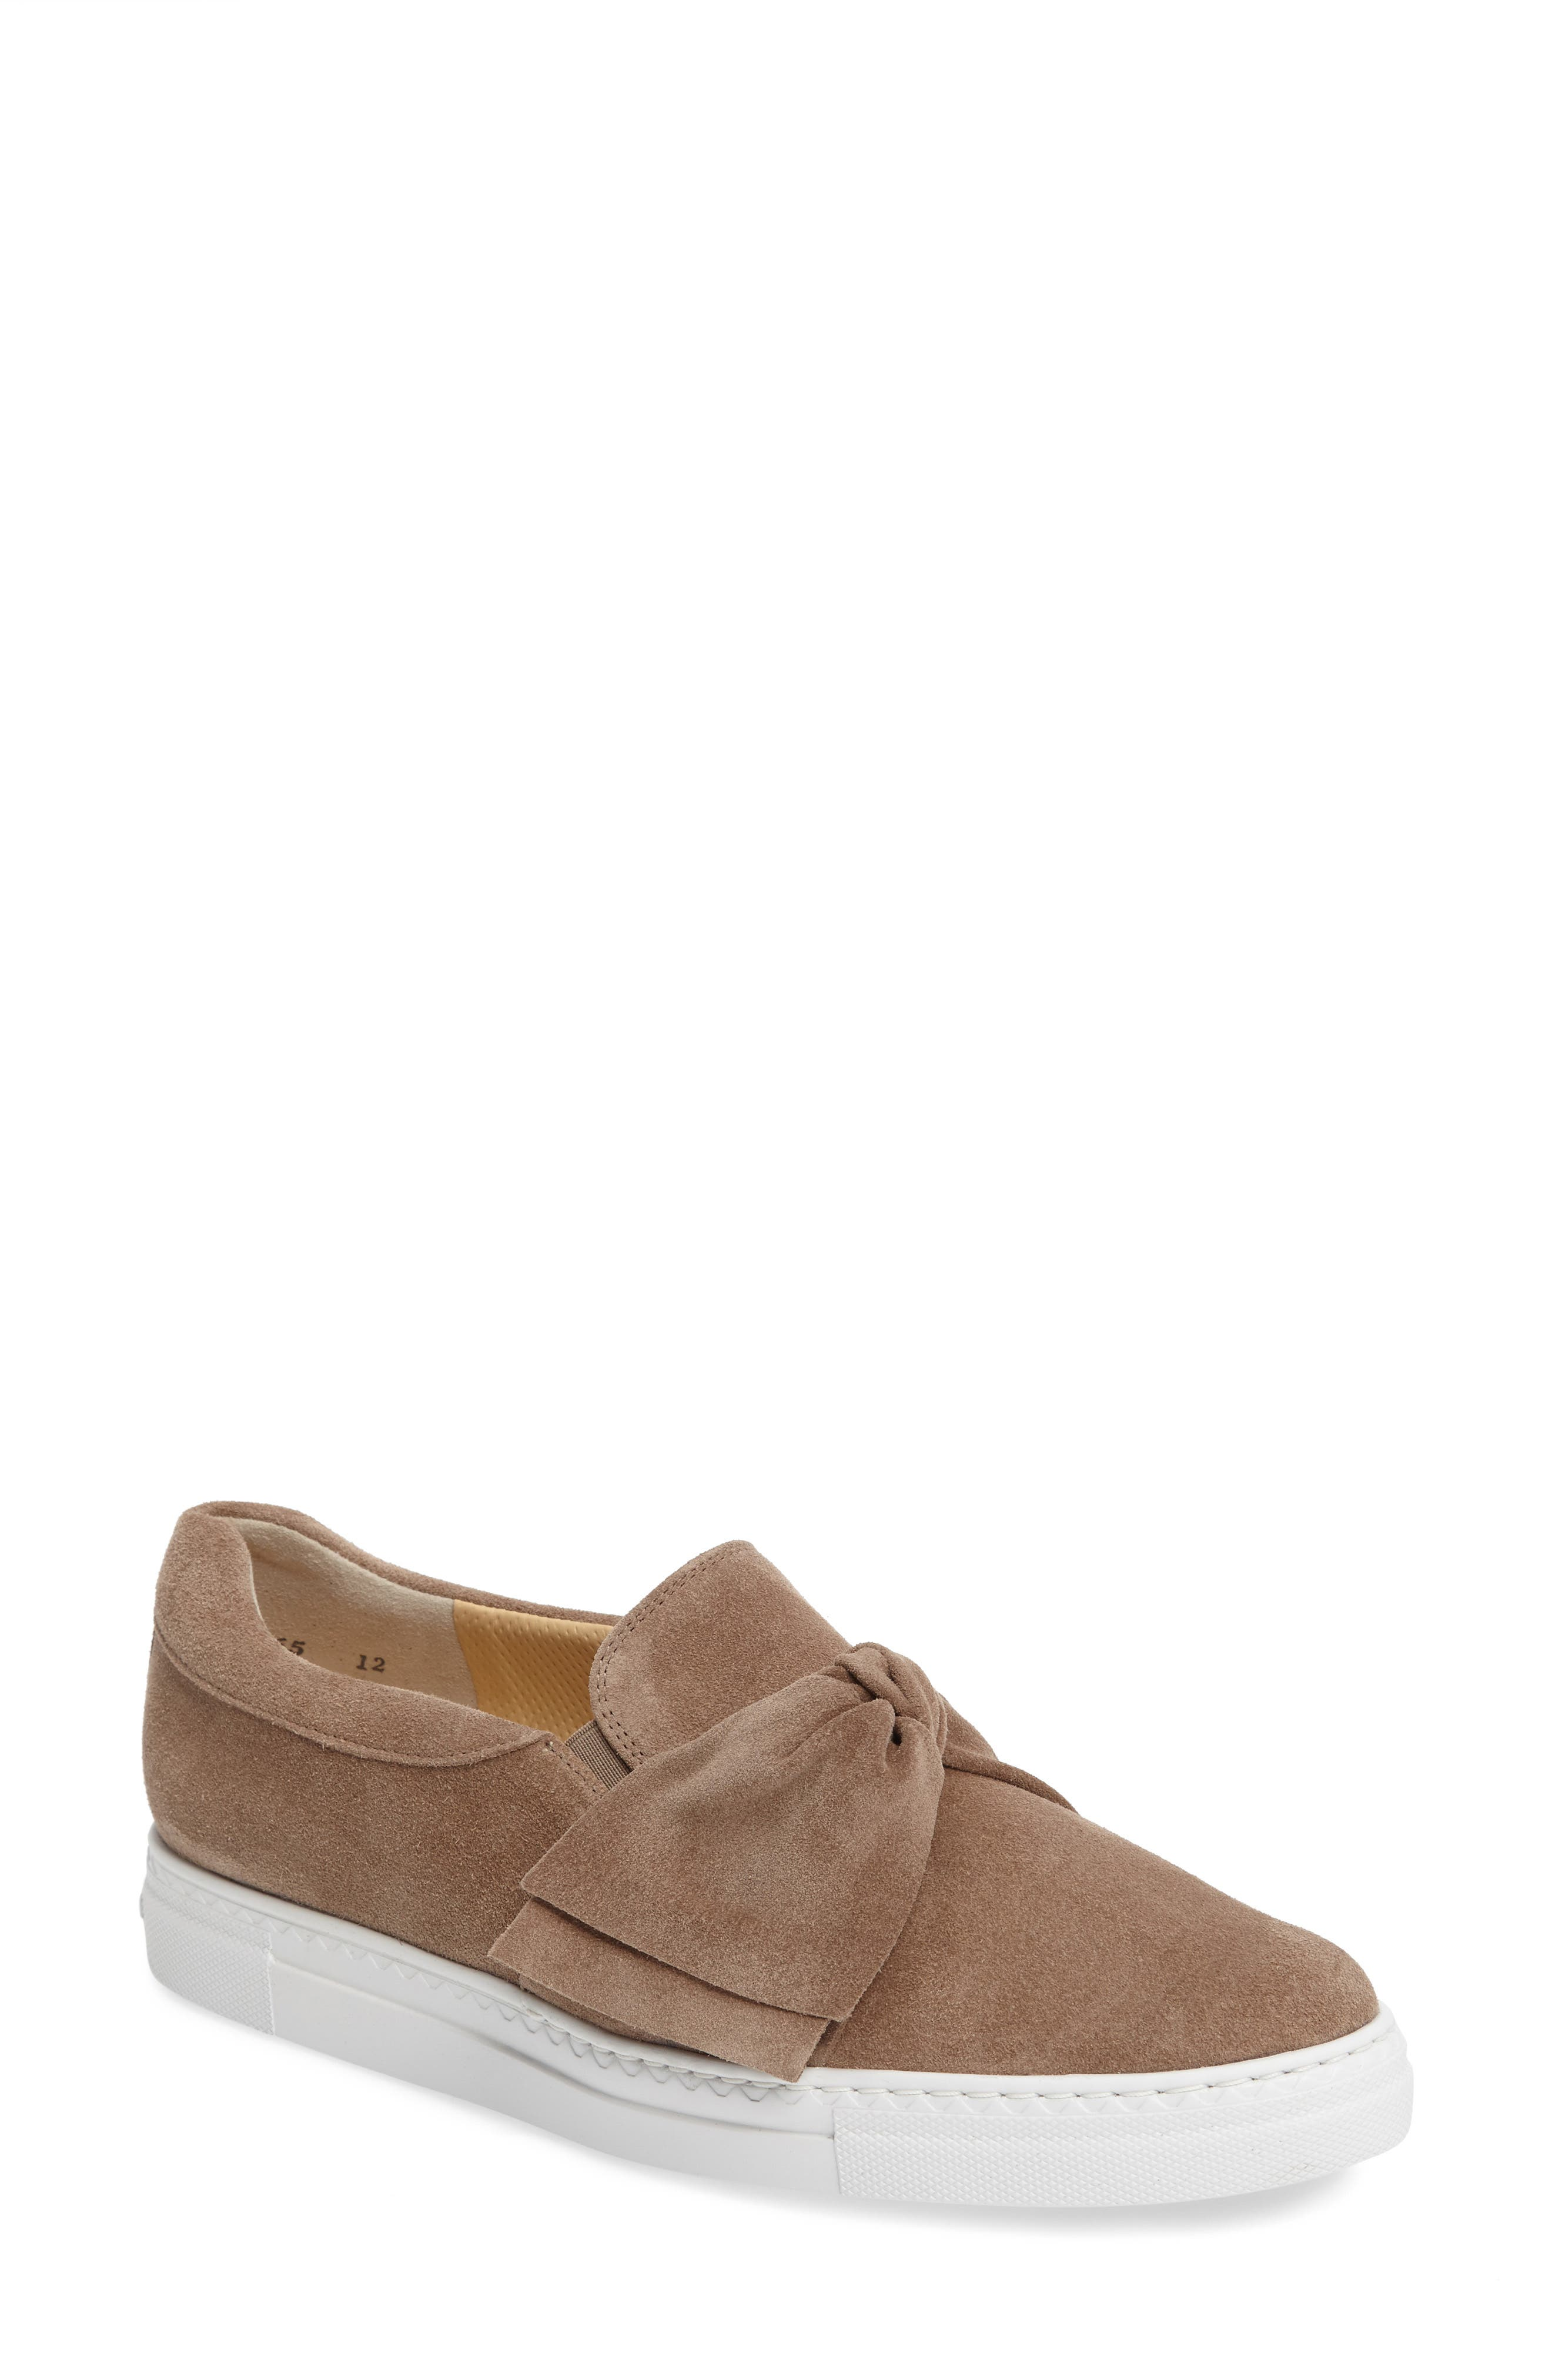 Paul Green Micky Bow Slip-On Sneaker (Women)